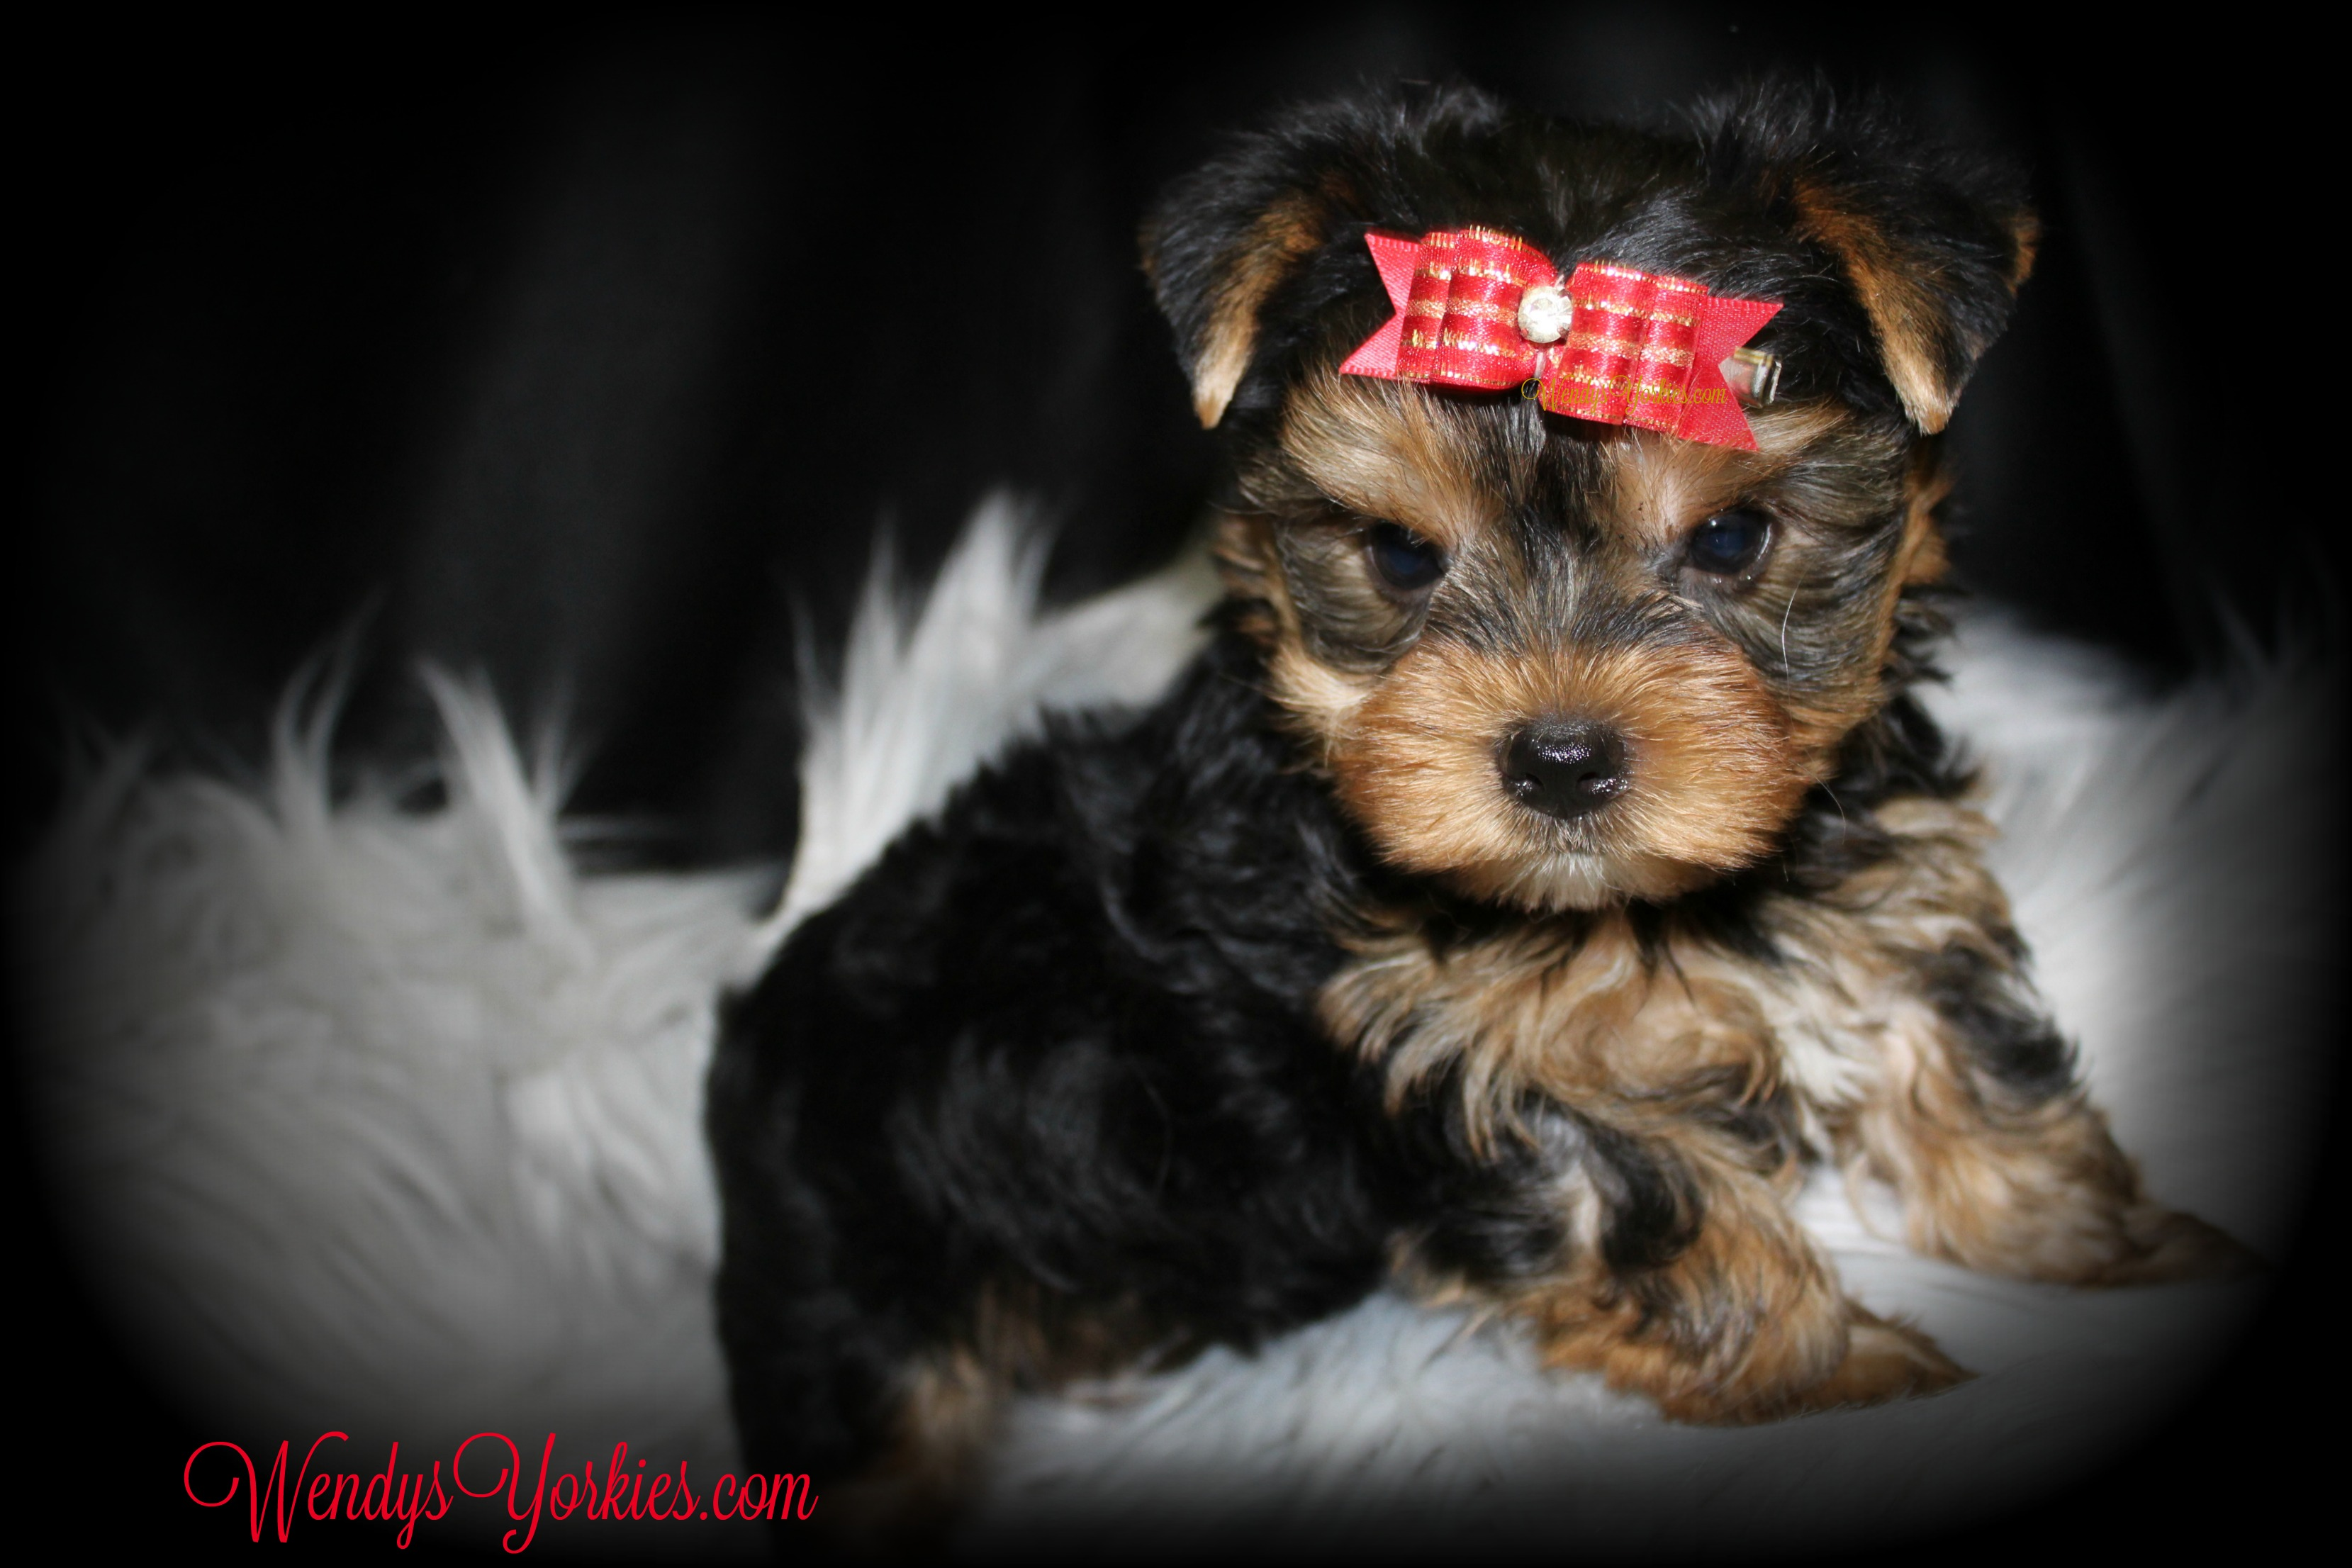 Teacup Male Yorkie puppy for sale, WendysYorkies.com, Grace m1